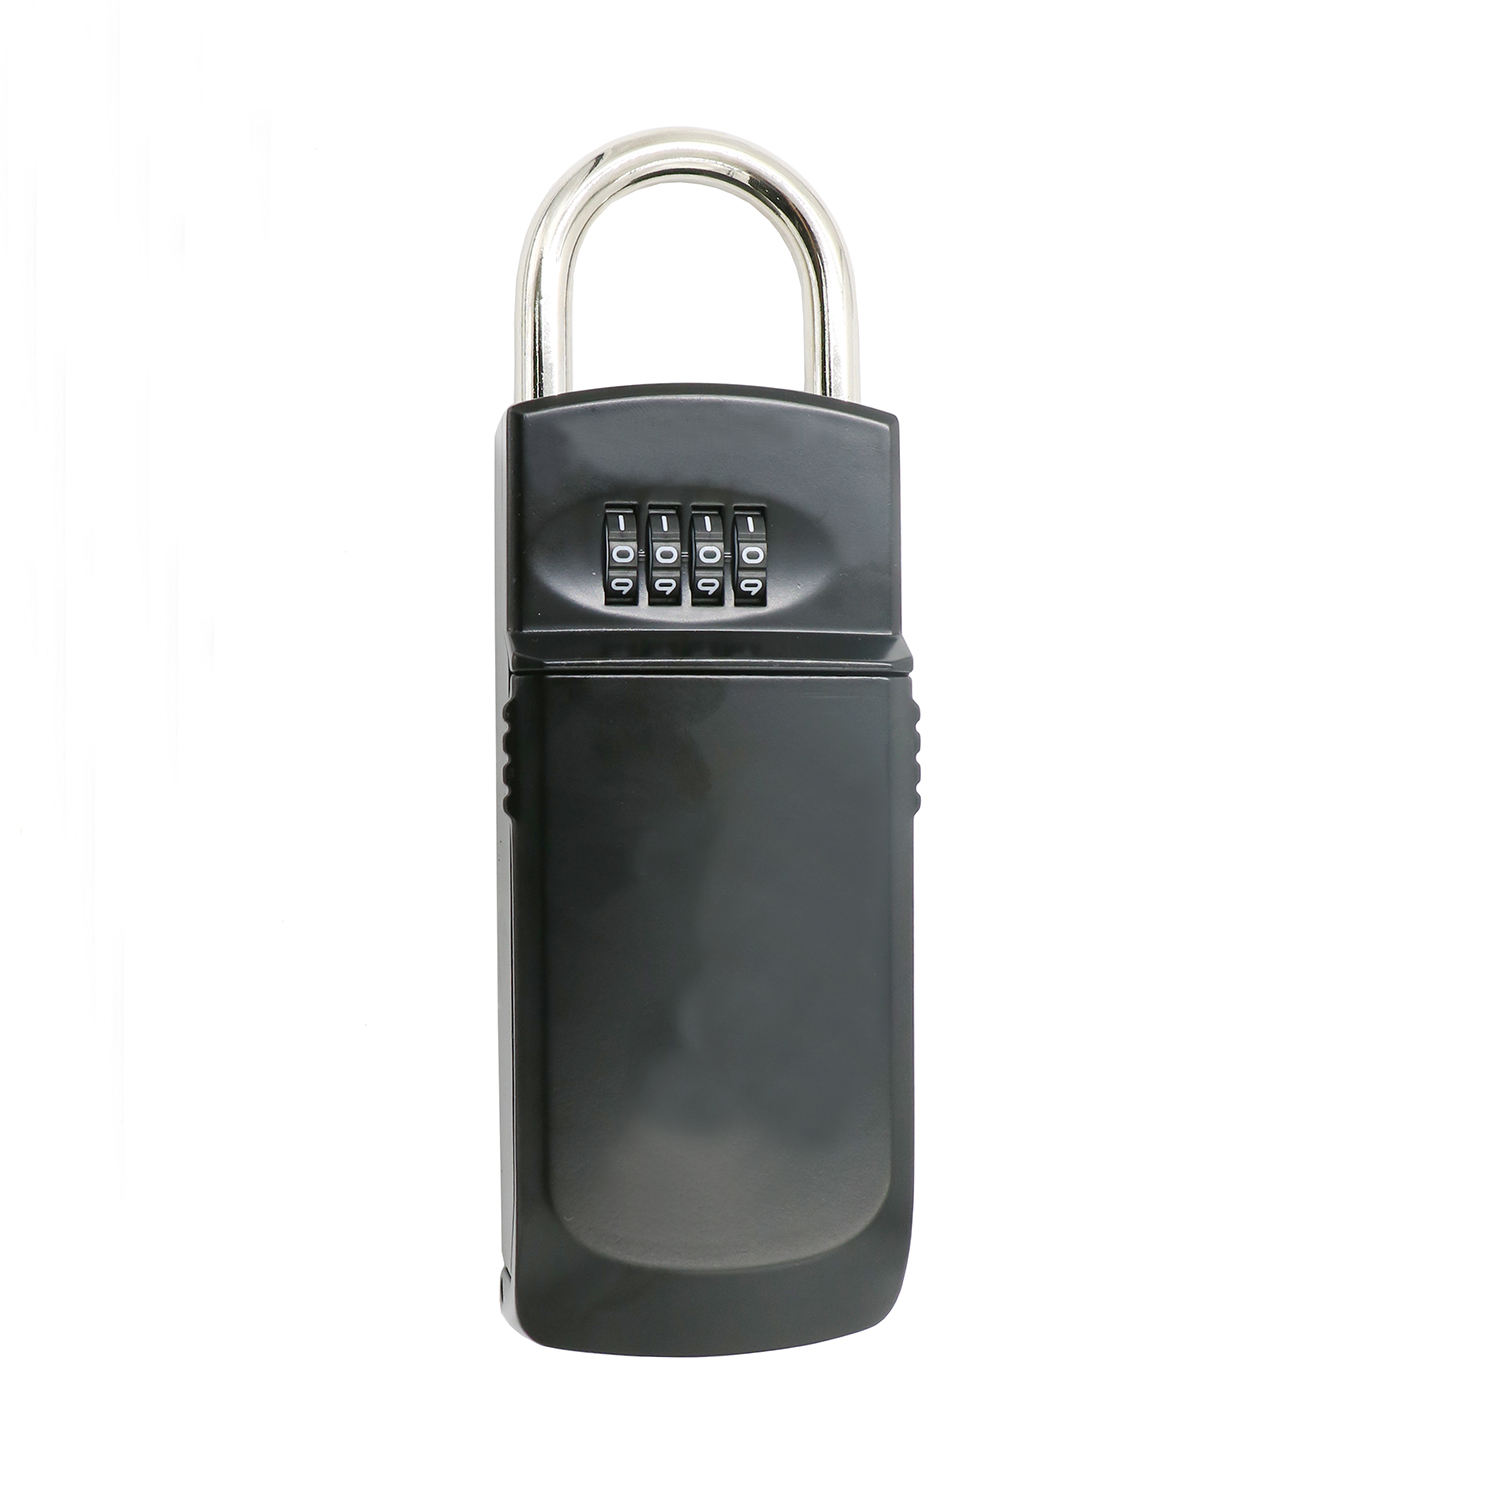 China Wholesale key safe car surf lockbox Digital password lock